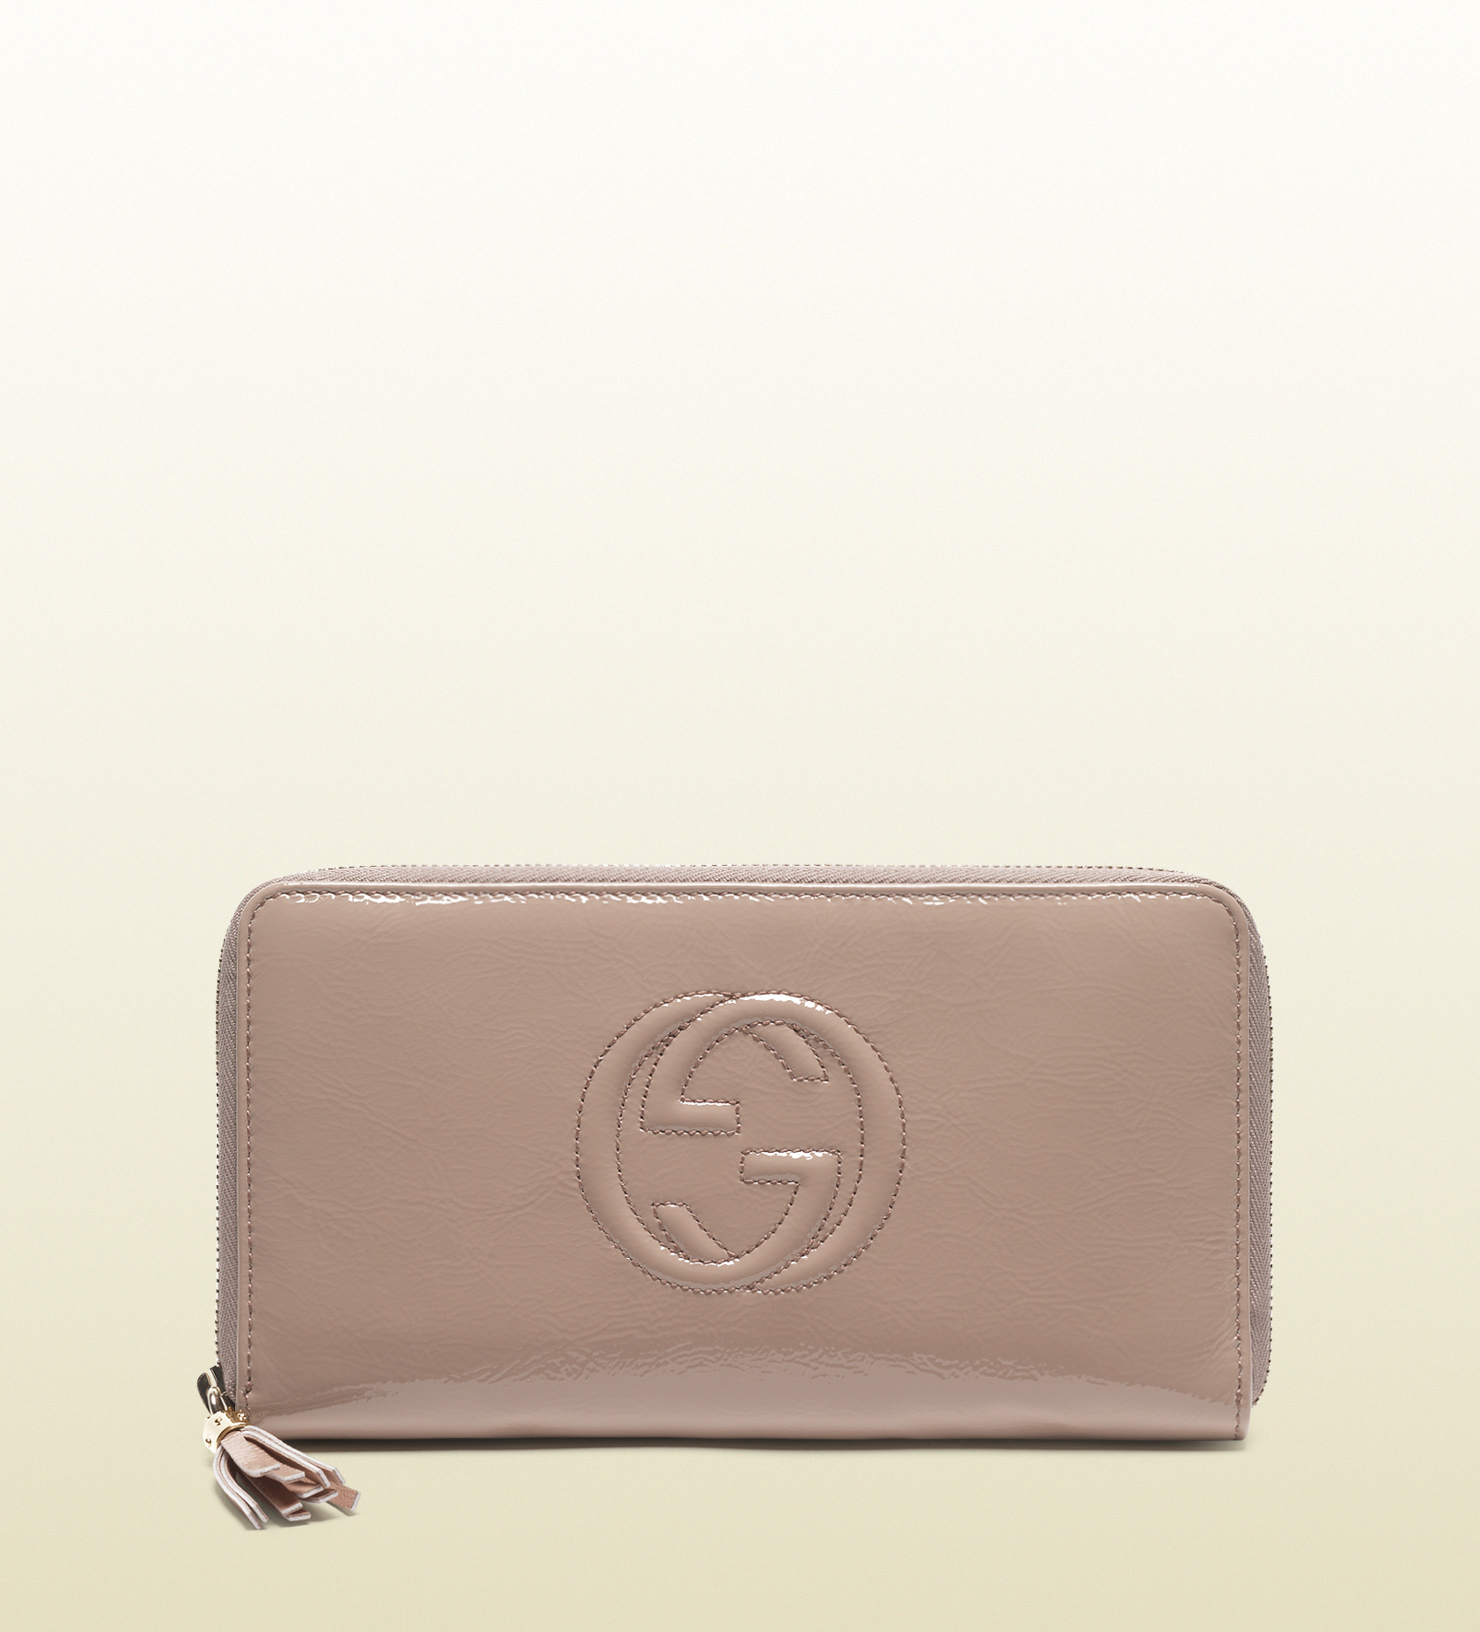 1b07d1de0a1 Lyst - Gucci Soho Patent Leather Zip Around Wallet in Pink